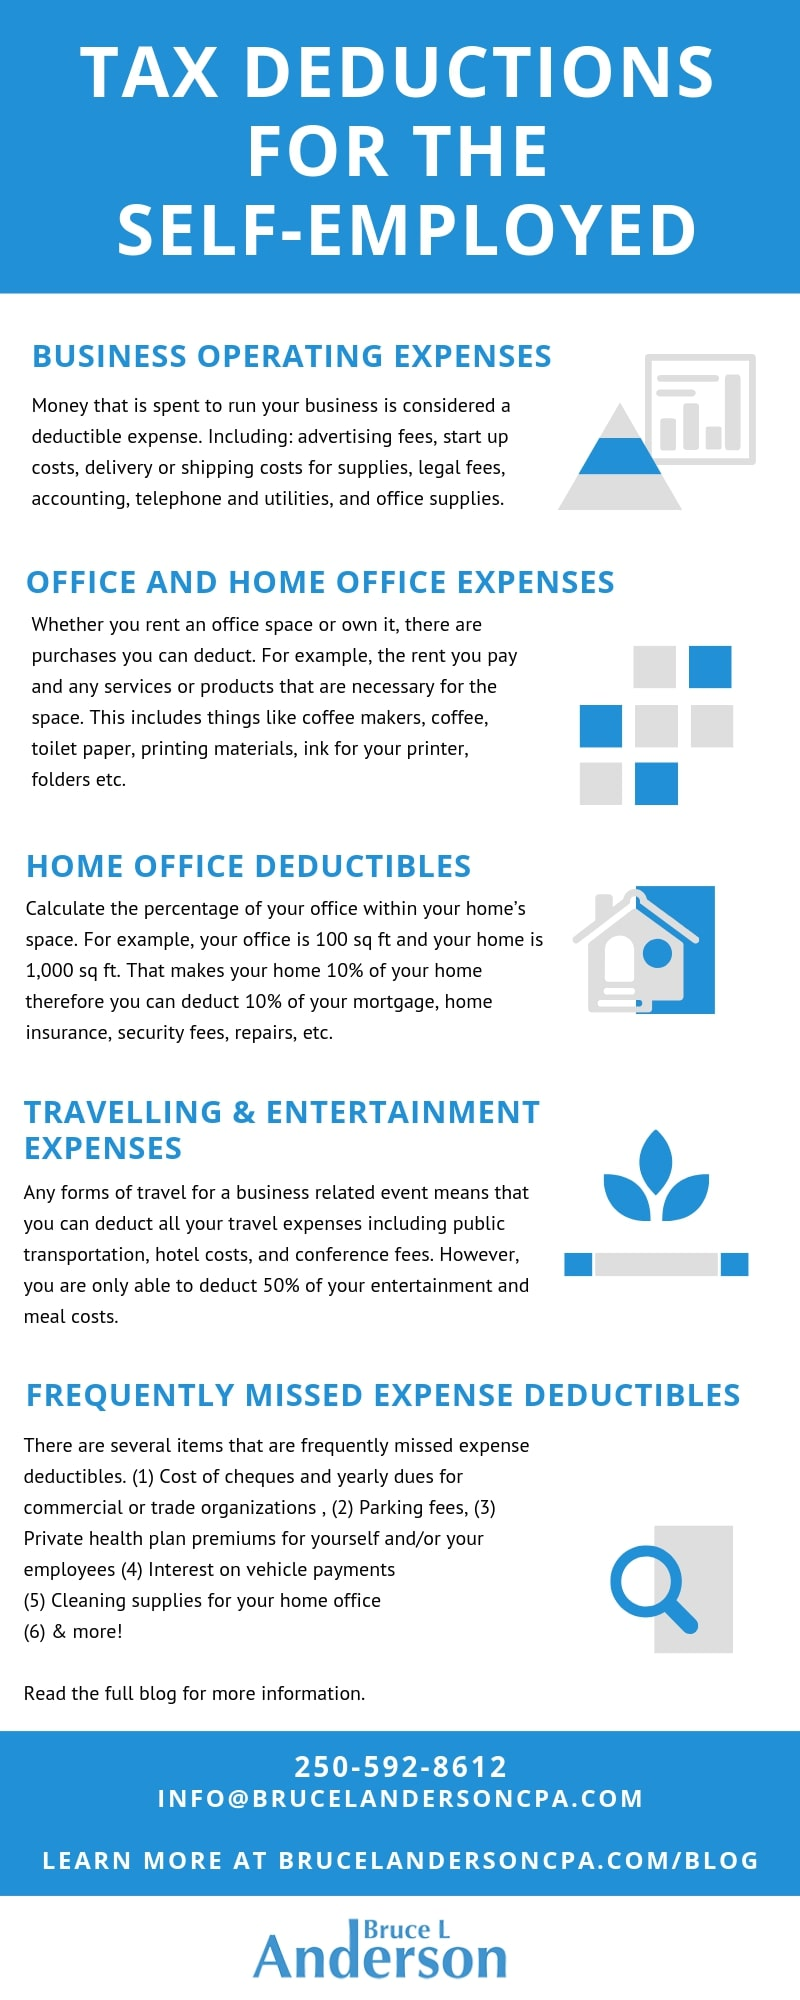 Tax Deductions For Self-Employed | Bruce L Anderson, CPA CGA